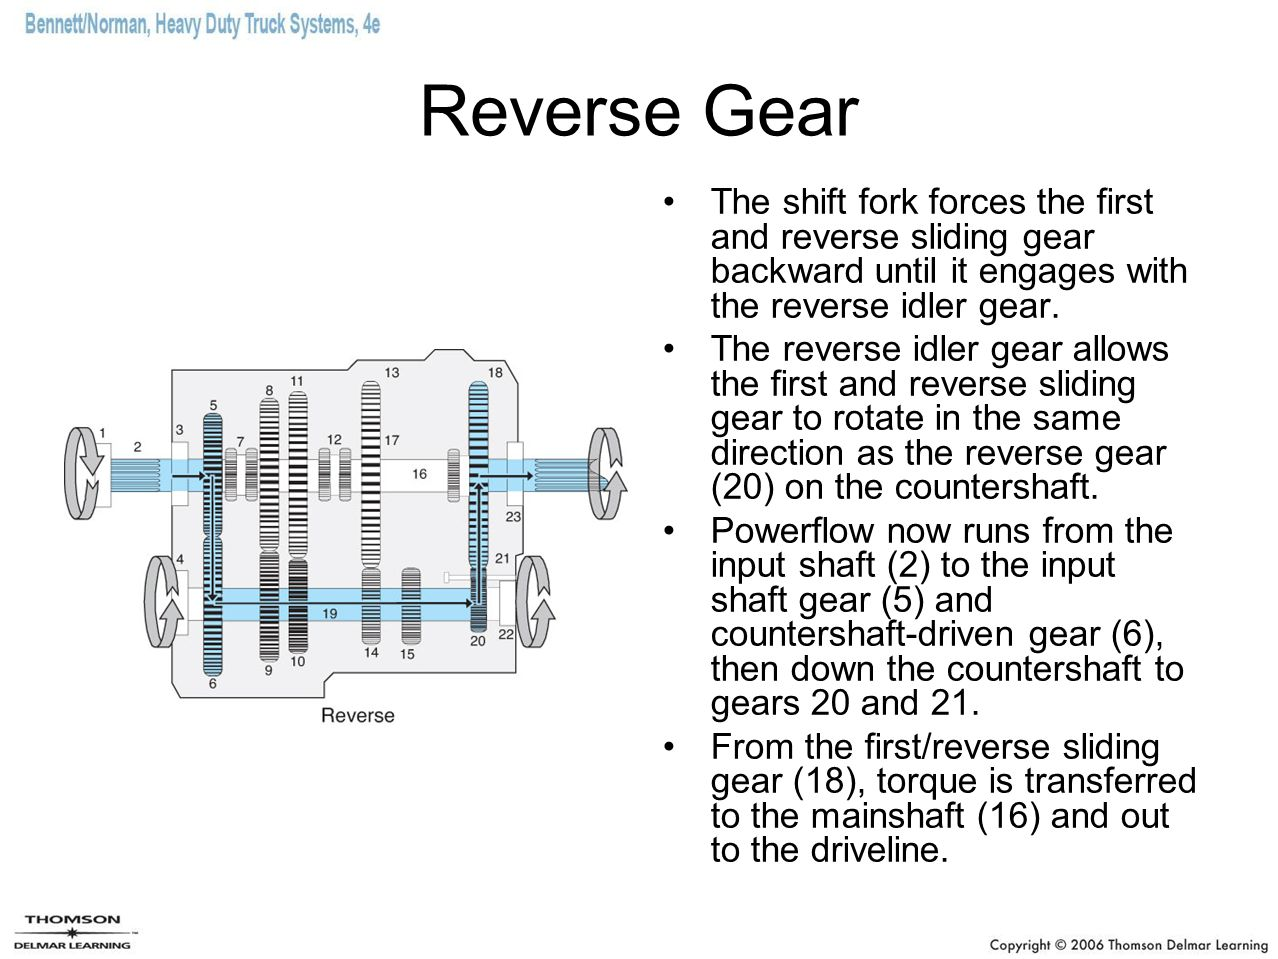 Reverse Gear The shift fork forces the first and reverse sliding gear backward until it engages with the reverse idler gear.